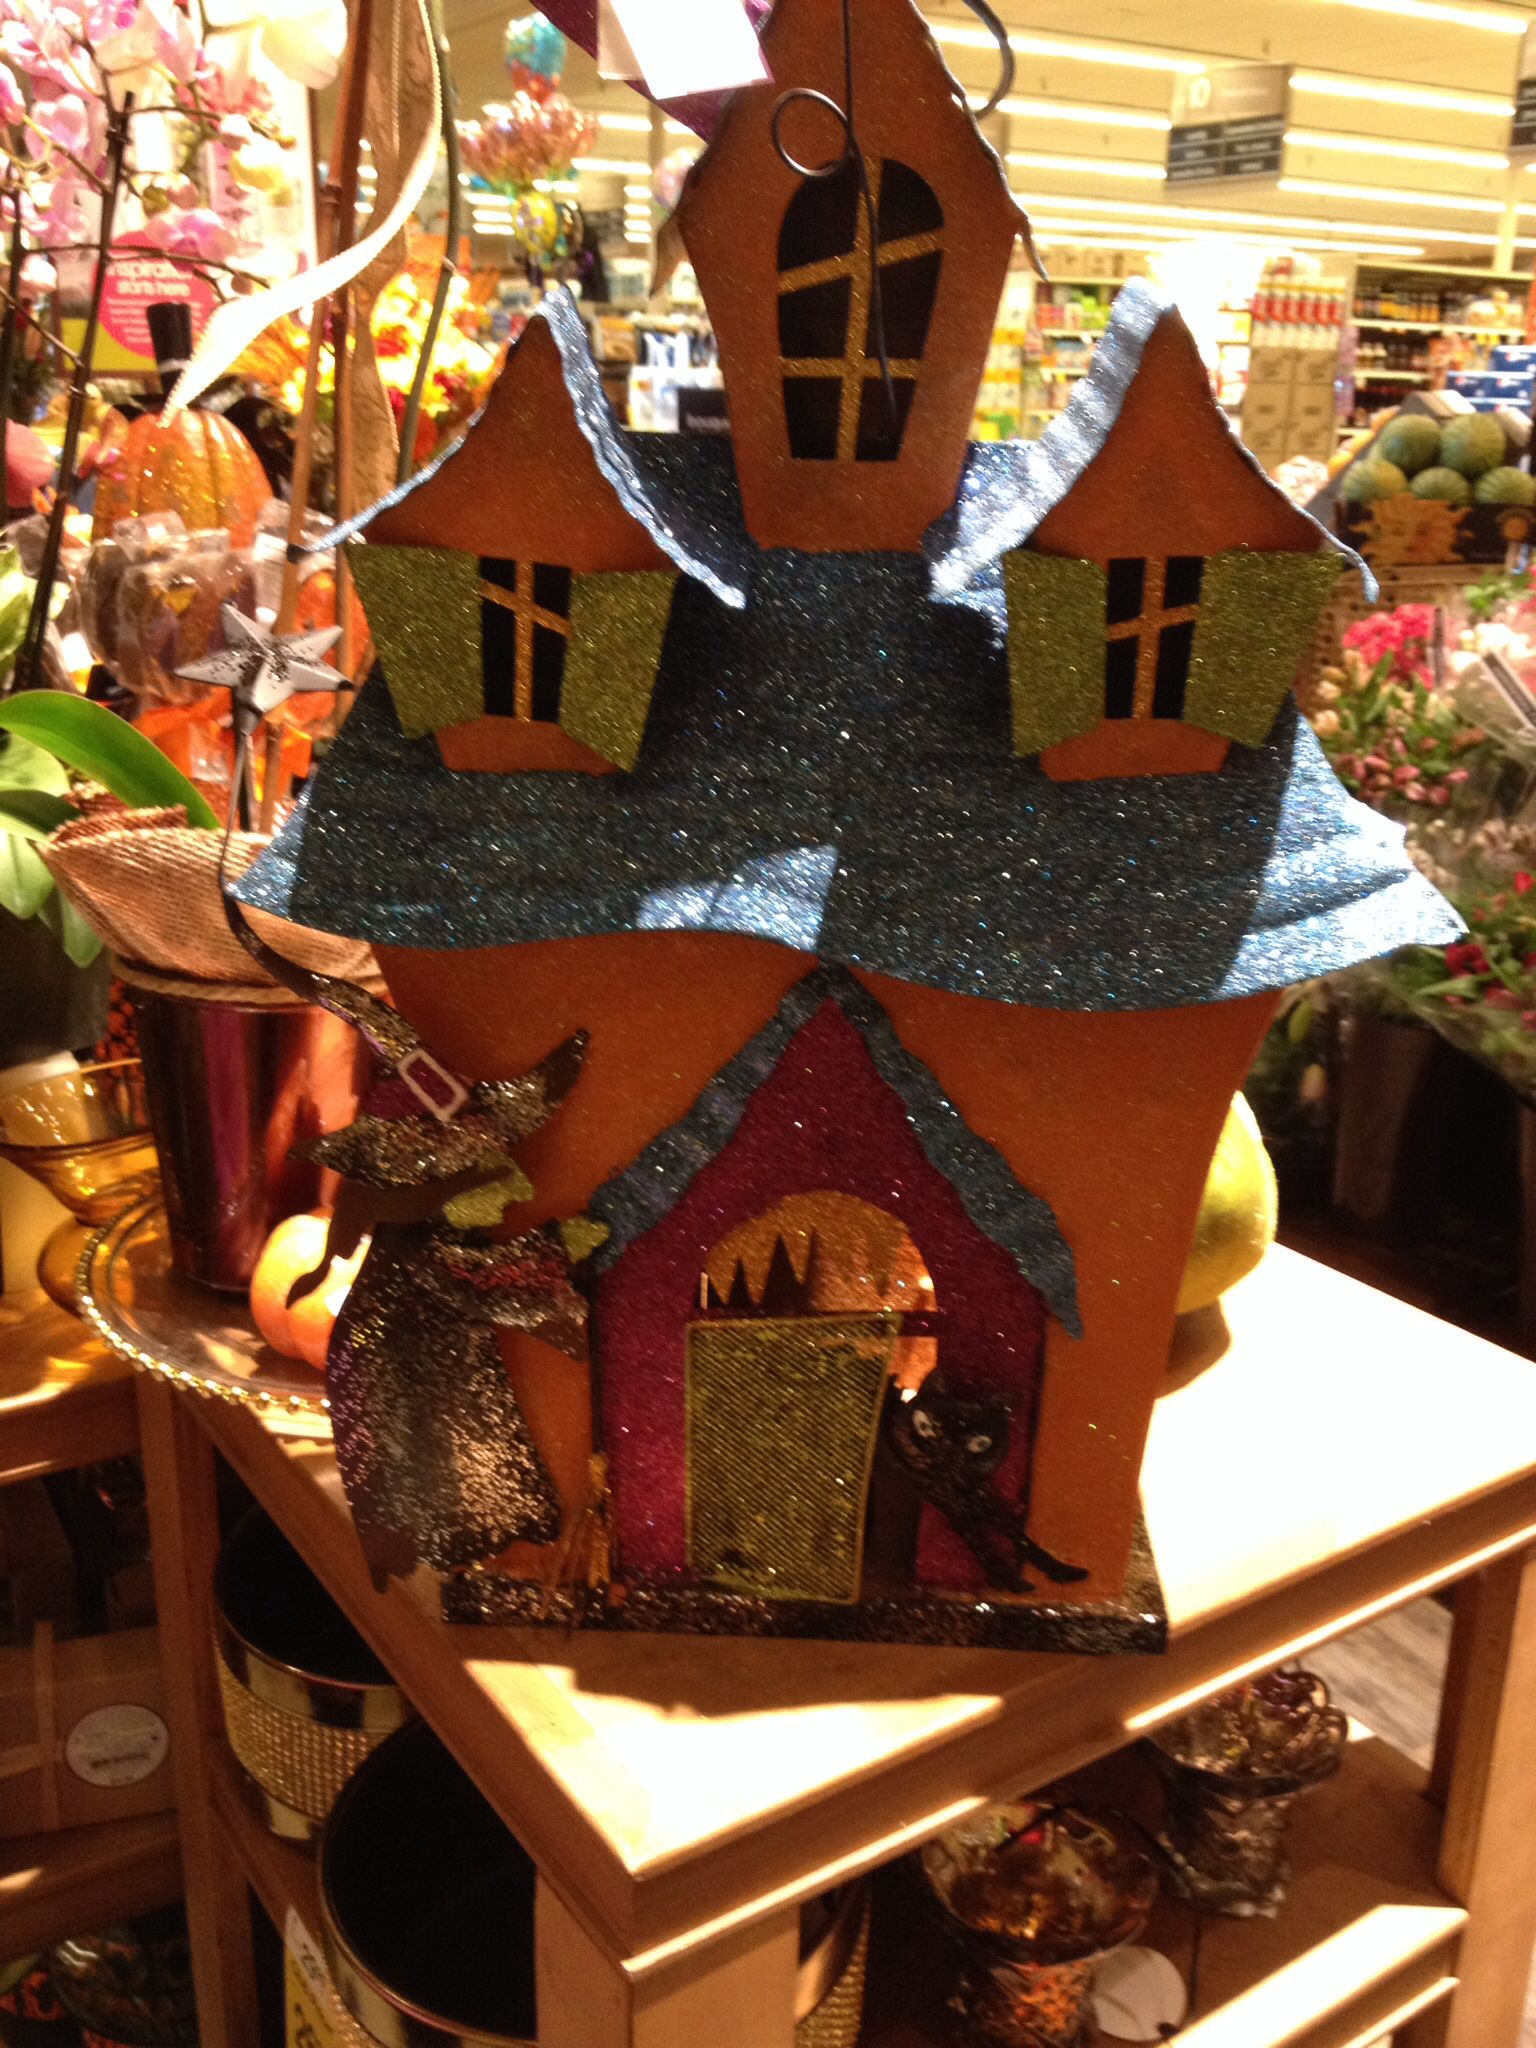 Safeway Halloween Decorations.Pin On Fall Autumn Wishes